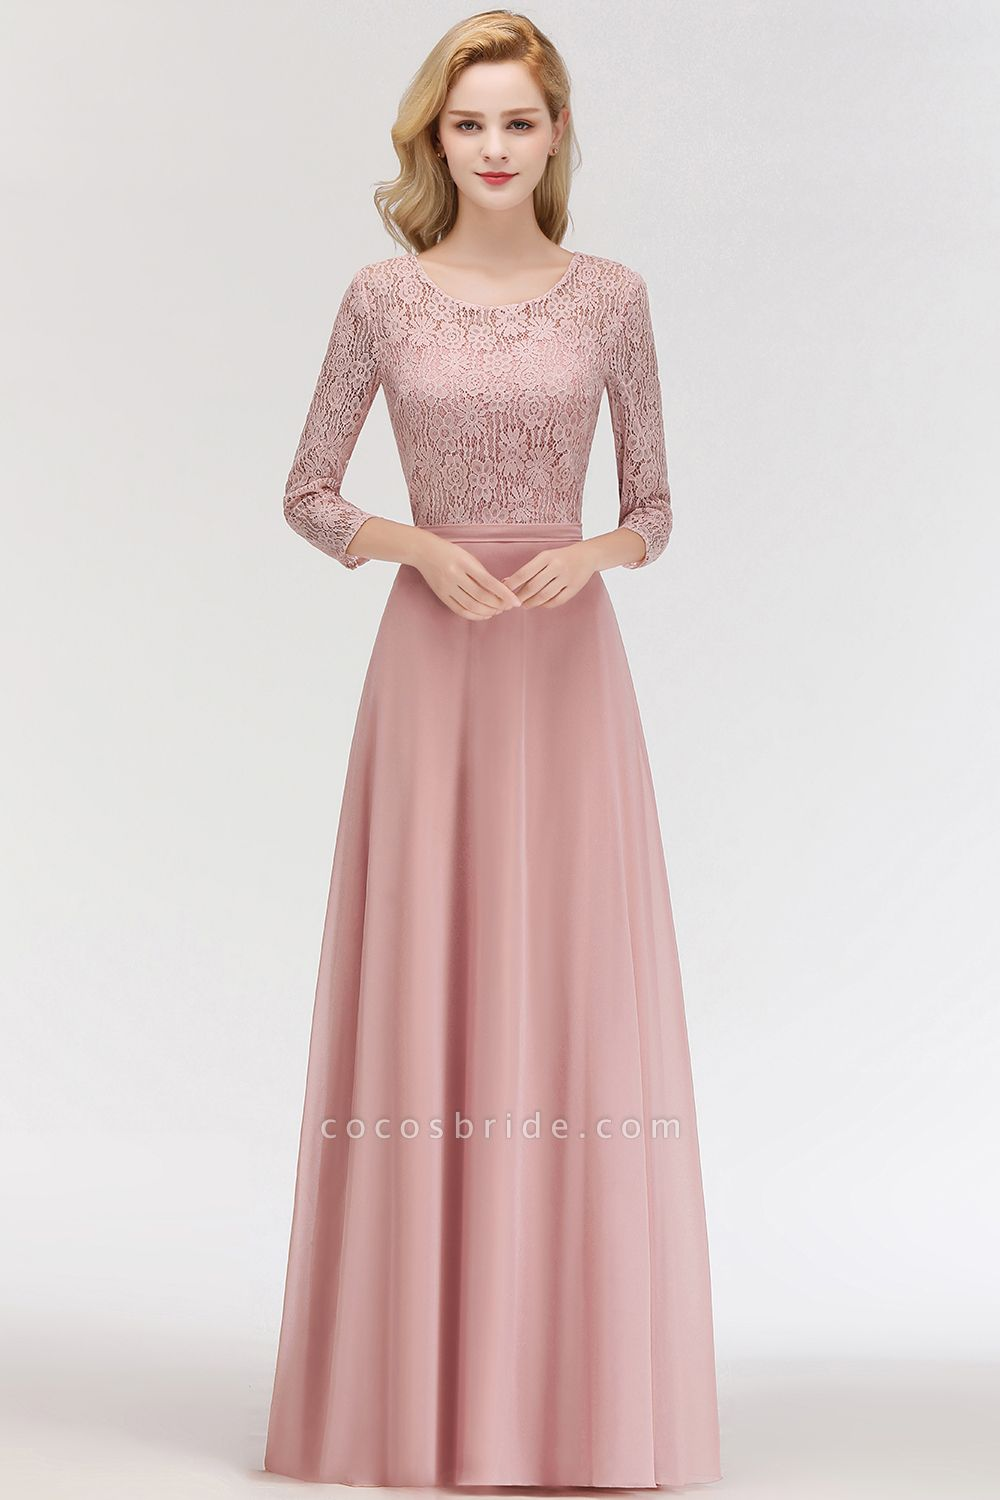 MARIAN | A-line Floor Length Lace Chiffon Bridesmaid Dresses with Sleeves